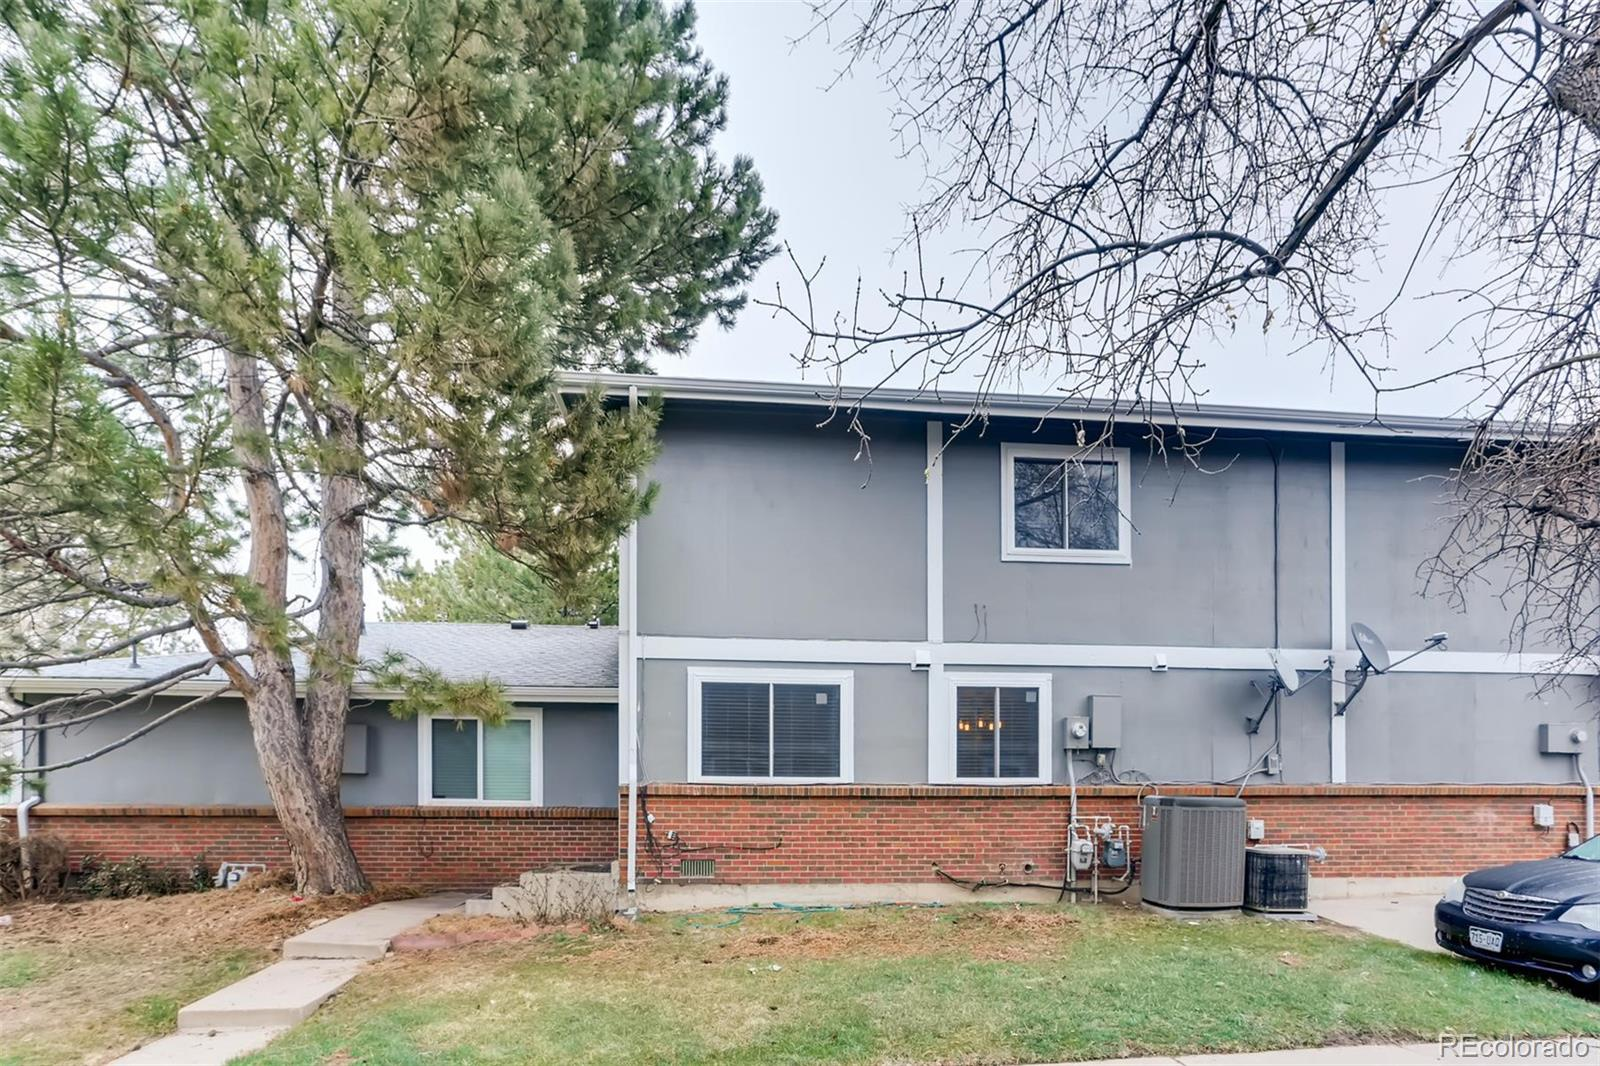 This 2 bed/1 bath townhome is perfectly remodeled!  Updated within the last few years - flooring, countertops, cabinets, appliances, windows and all bathrooms!  Located in a quaint area that is close to I-225, shopping, parks and trails.  If you are looking at a perfectly move-in ready home - this is it!  Do not wait, or you may lose out!